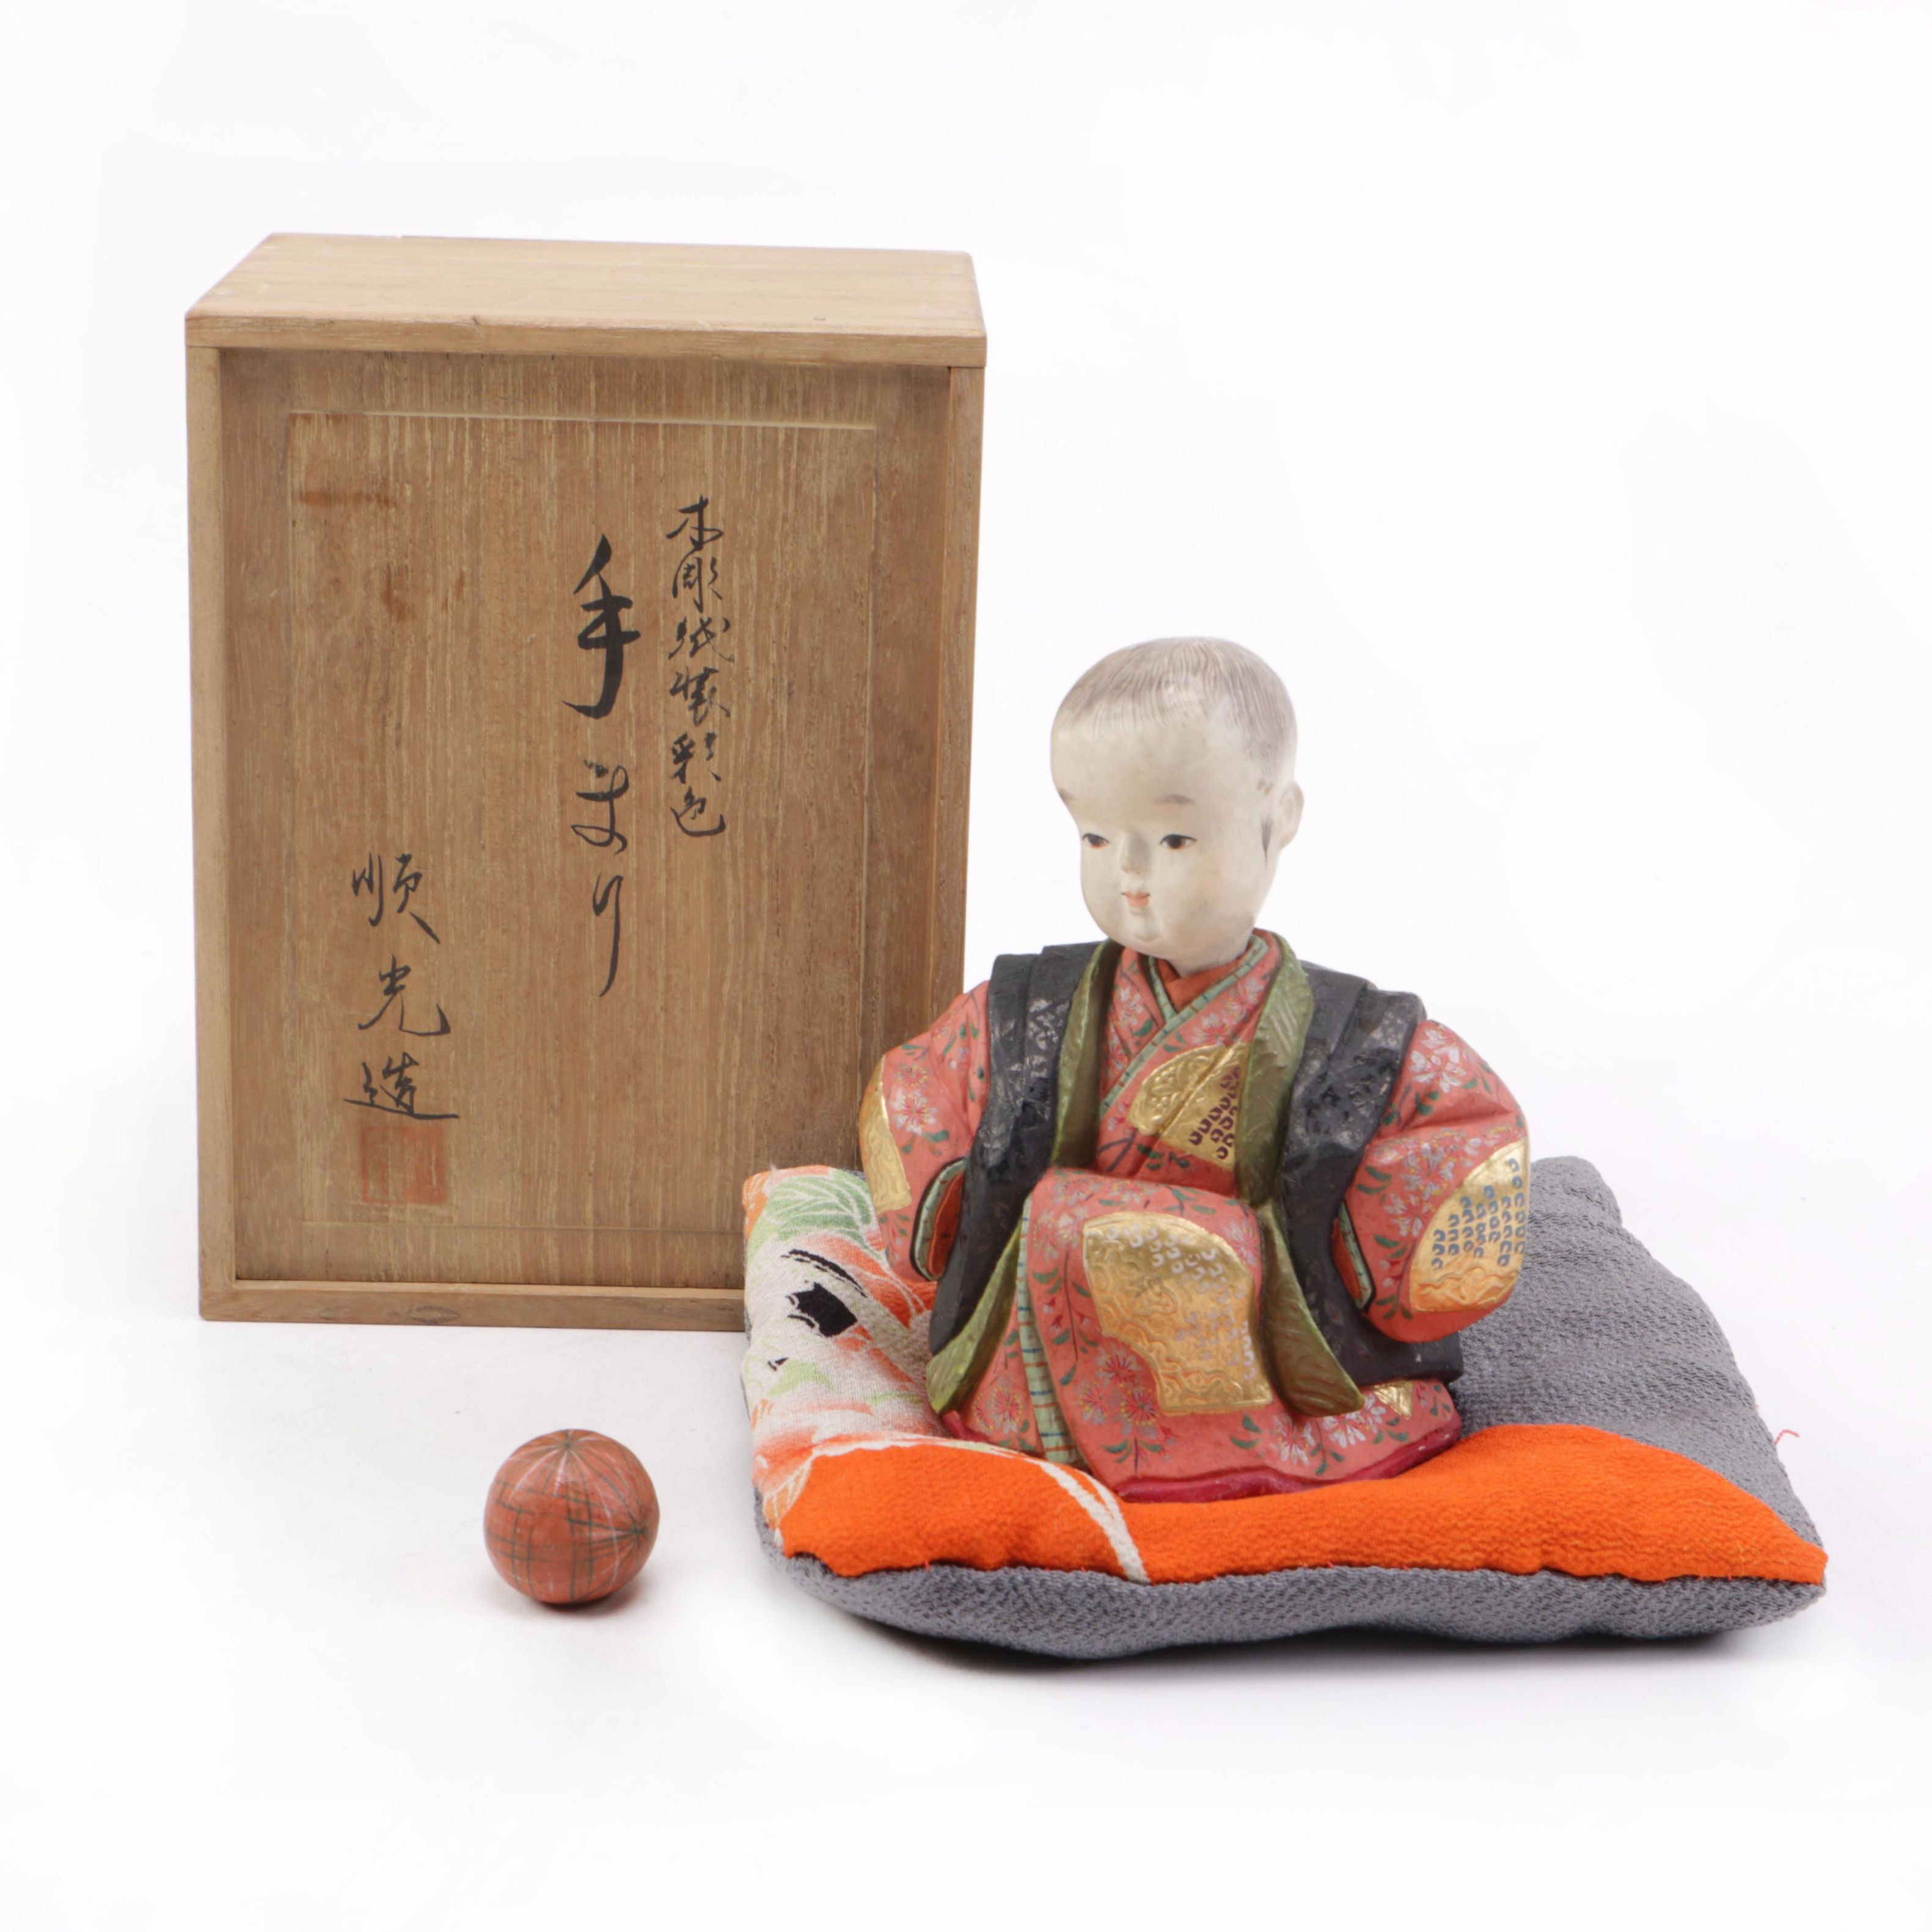 "Japanese Wooden Boy Playing with Ball Figurine Titled ""Temari"""